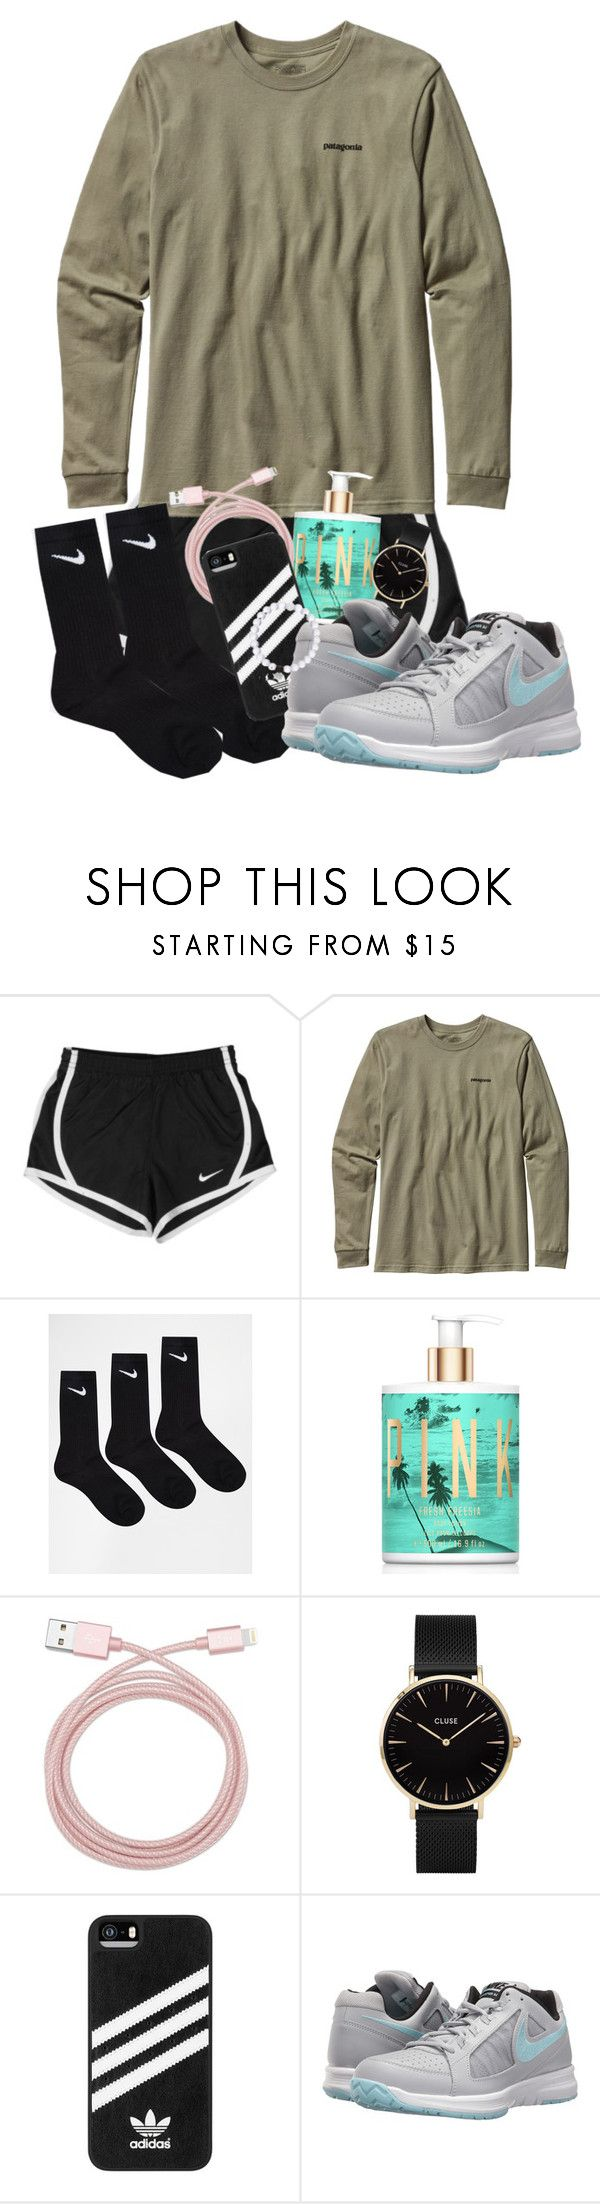 """""""We have sever thunderstorms today!⛈🌩🌧☔️"""" by maris3456 ❤ liked on Polyvore featuring NIKE, Patagonia, Victoria's Secret, Belkin, CLUSE, adidas, Everest, Pink, nike and thunderstorms"""